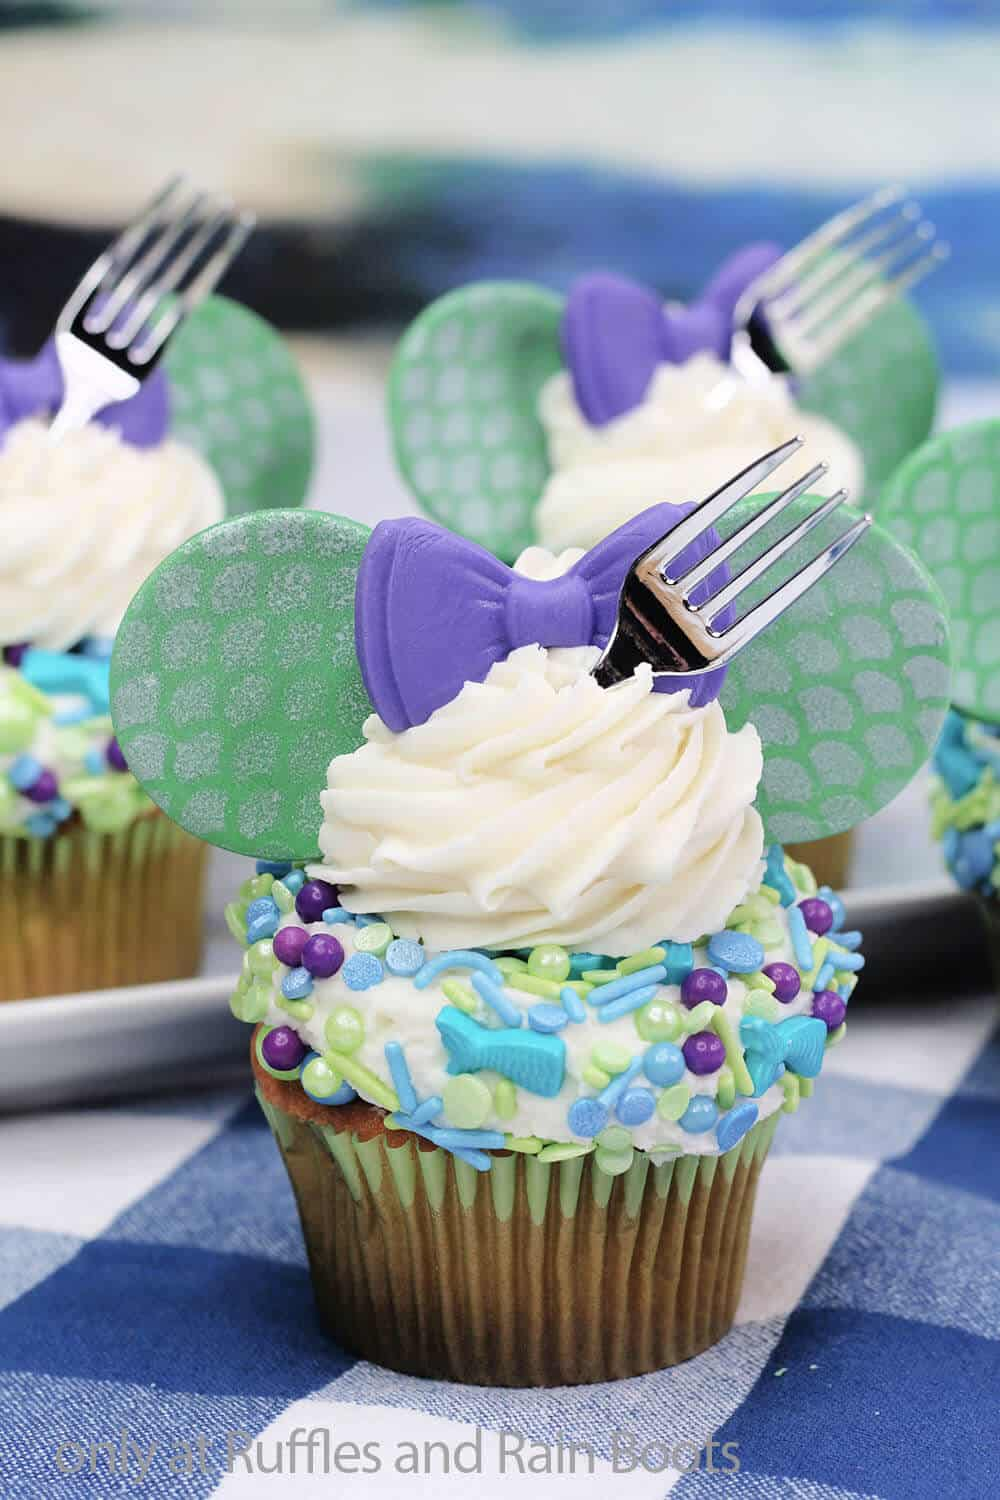 mickey mouse cupcakes for ariel of little mermaid